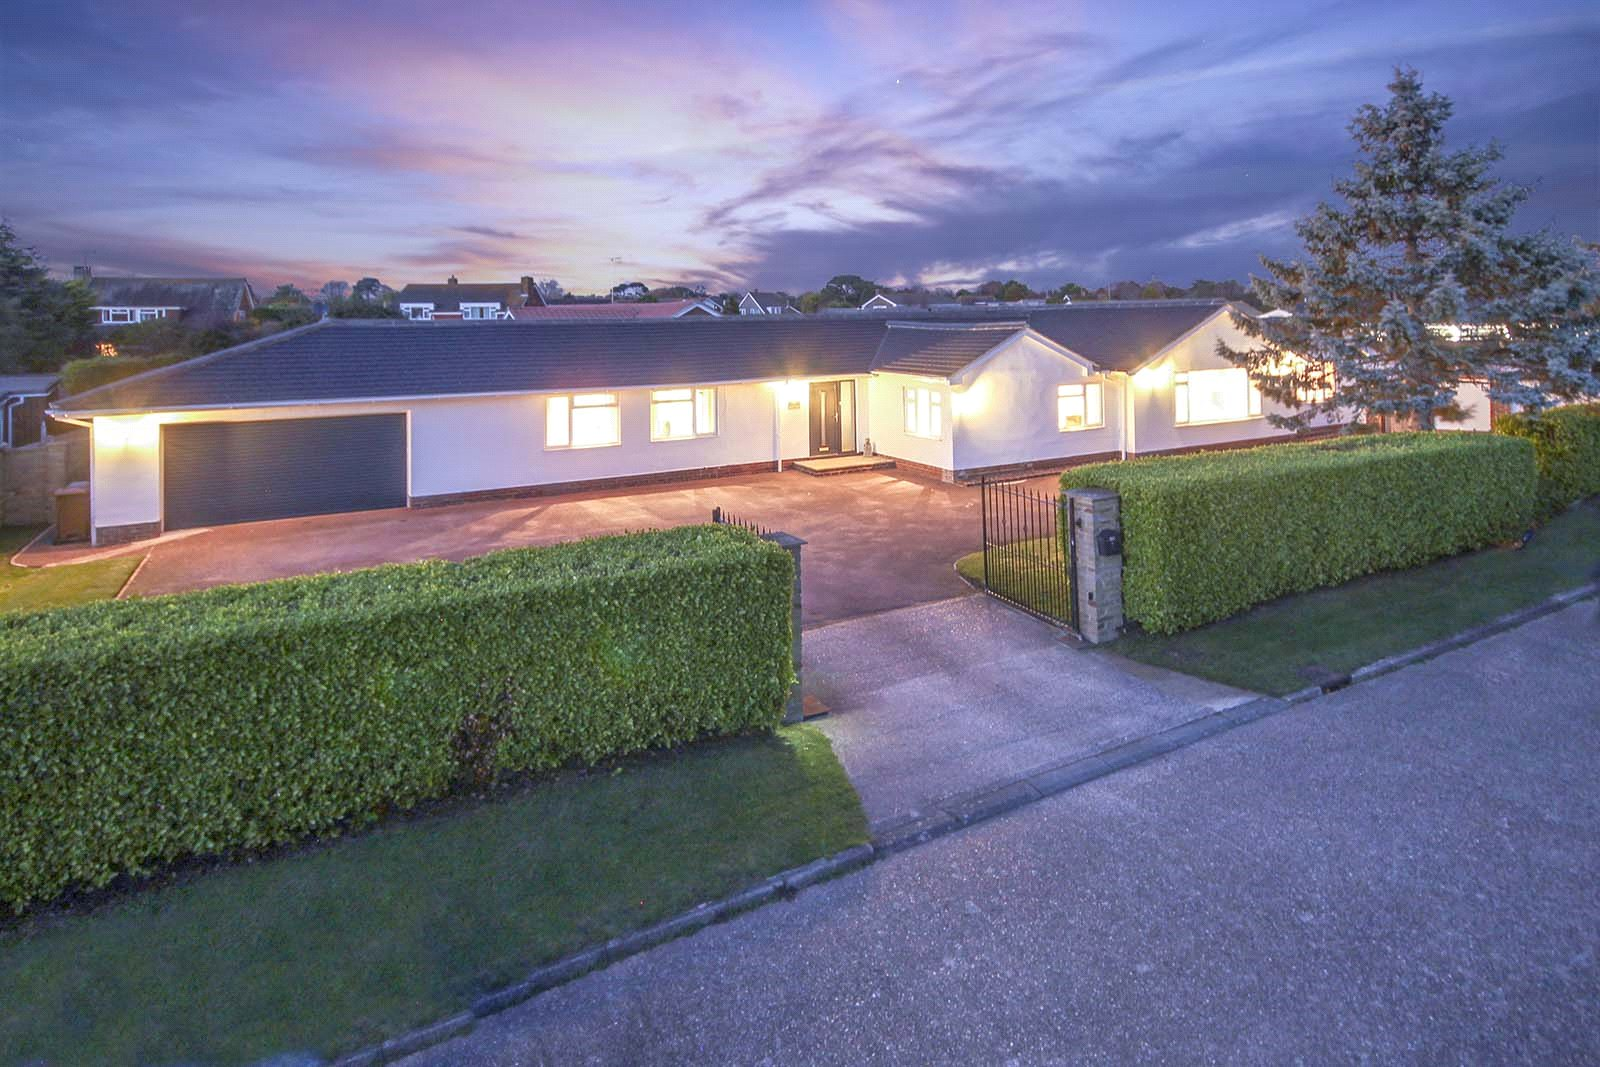 5 bed bungalow for sale in Willowhayne, East Preston, BN16 2TH, BN16